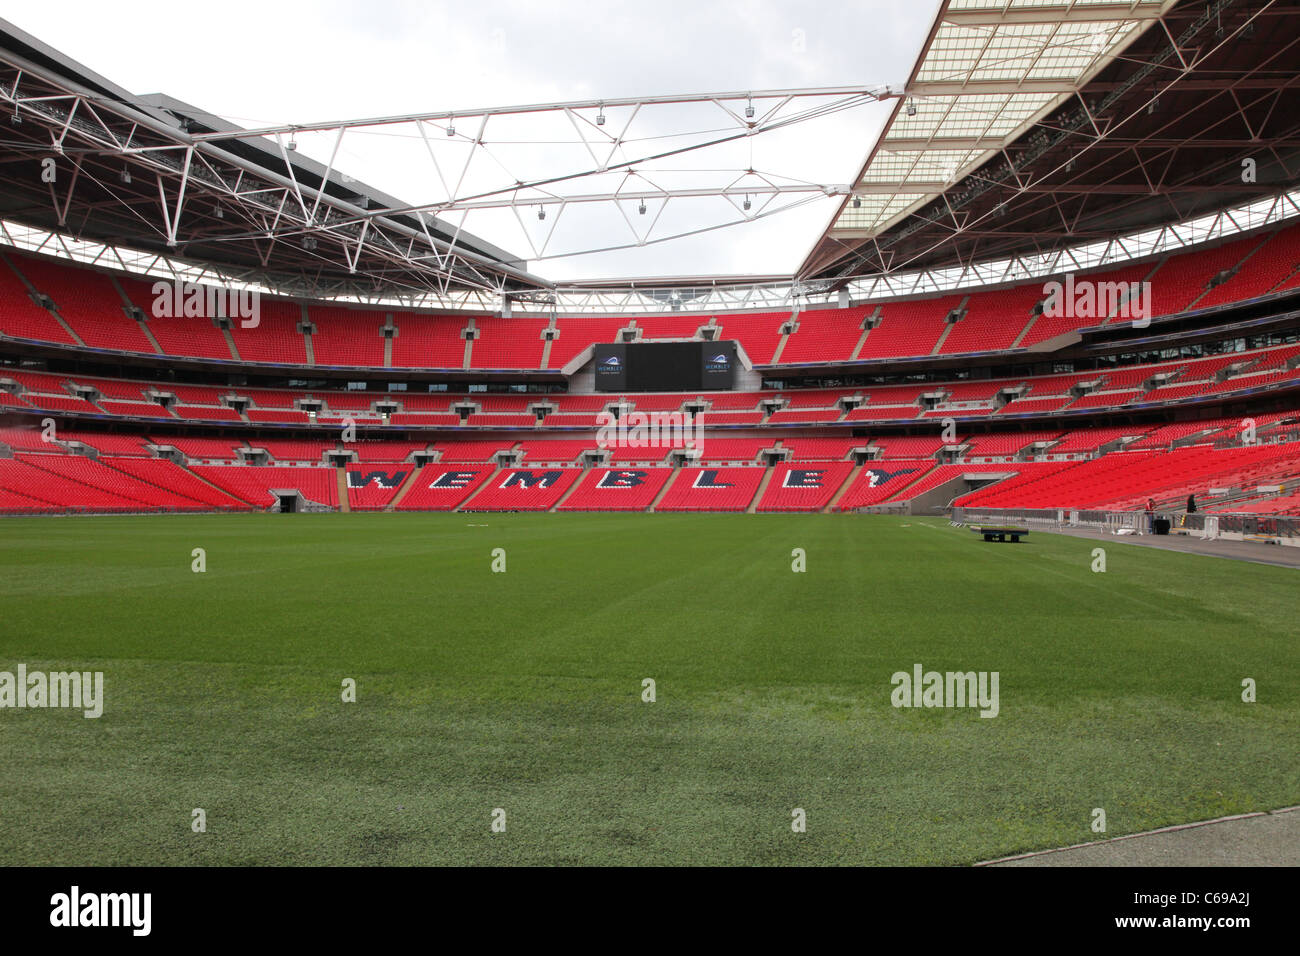 Wembley Stadium pitch - Stock Image